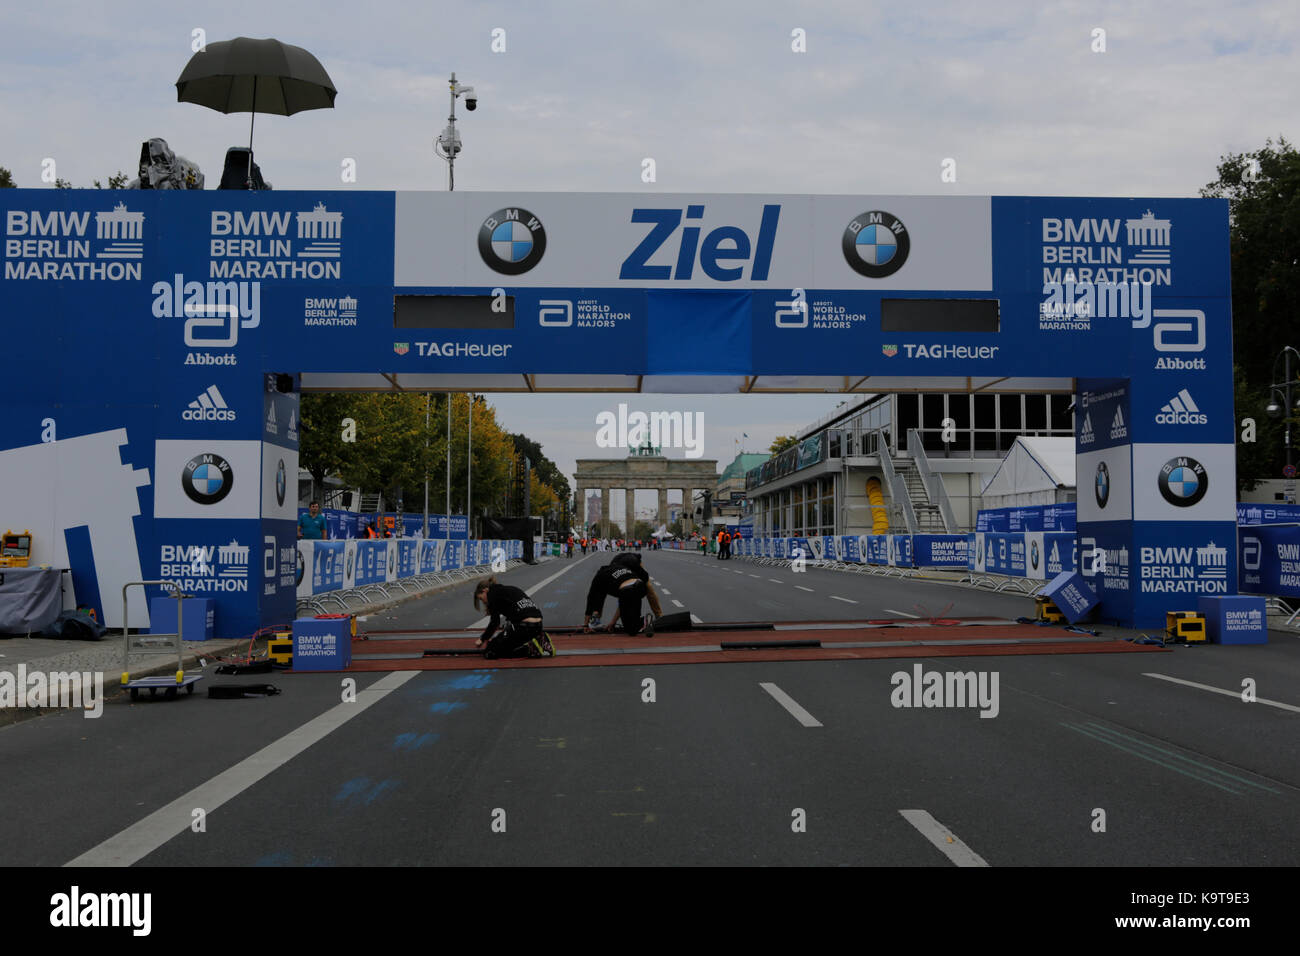 Berlin, Germany. 23rd Sep, 2017. Workers add the finishing touches to the finishing line. The Brandenburg Gate can be seen in the background. Over 5,500 skater took part in the 2017 BMW Berlin Marathon Inline skating race, a day ahead of the Marathon race. Bart Swings from Belgium won the race in 58:42 for the 5th year in a row. Credit: Michael Debets/Pacific Press/Alamy Live News Stock Photo